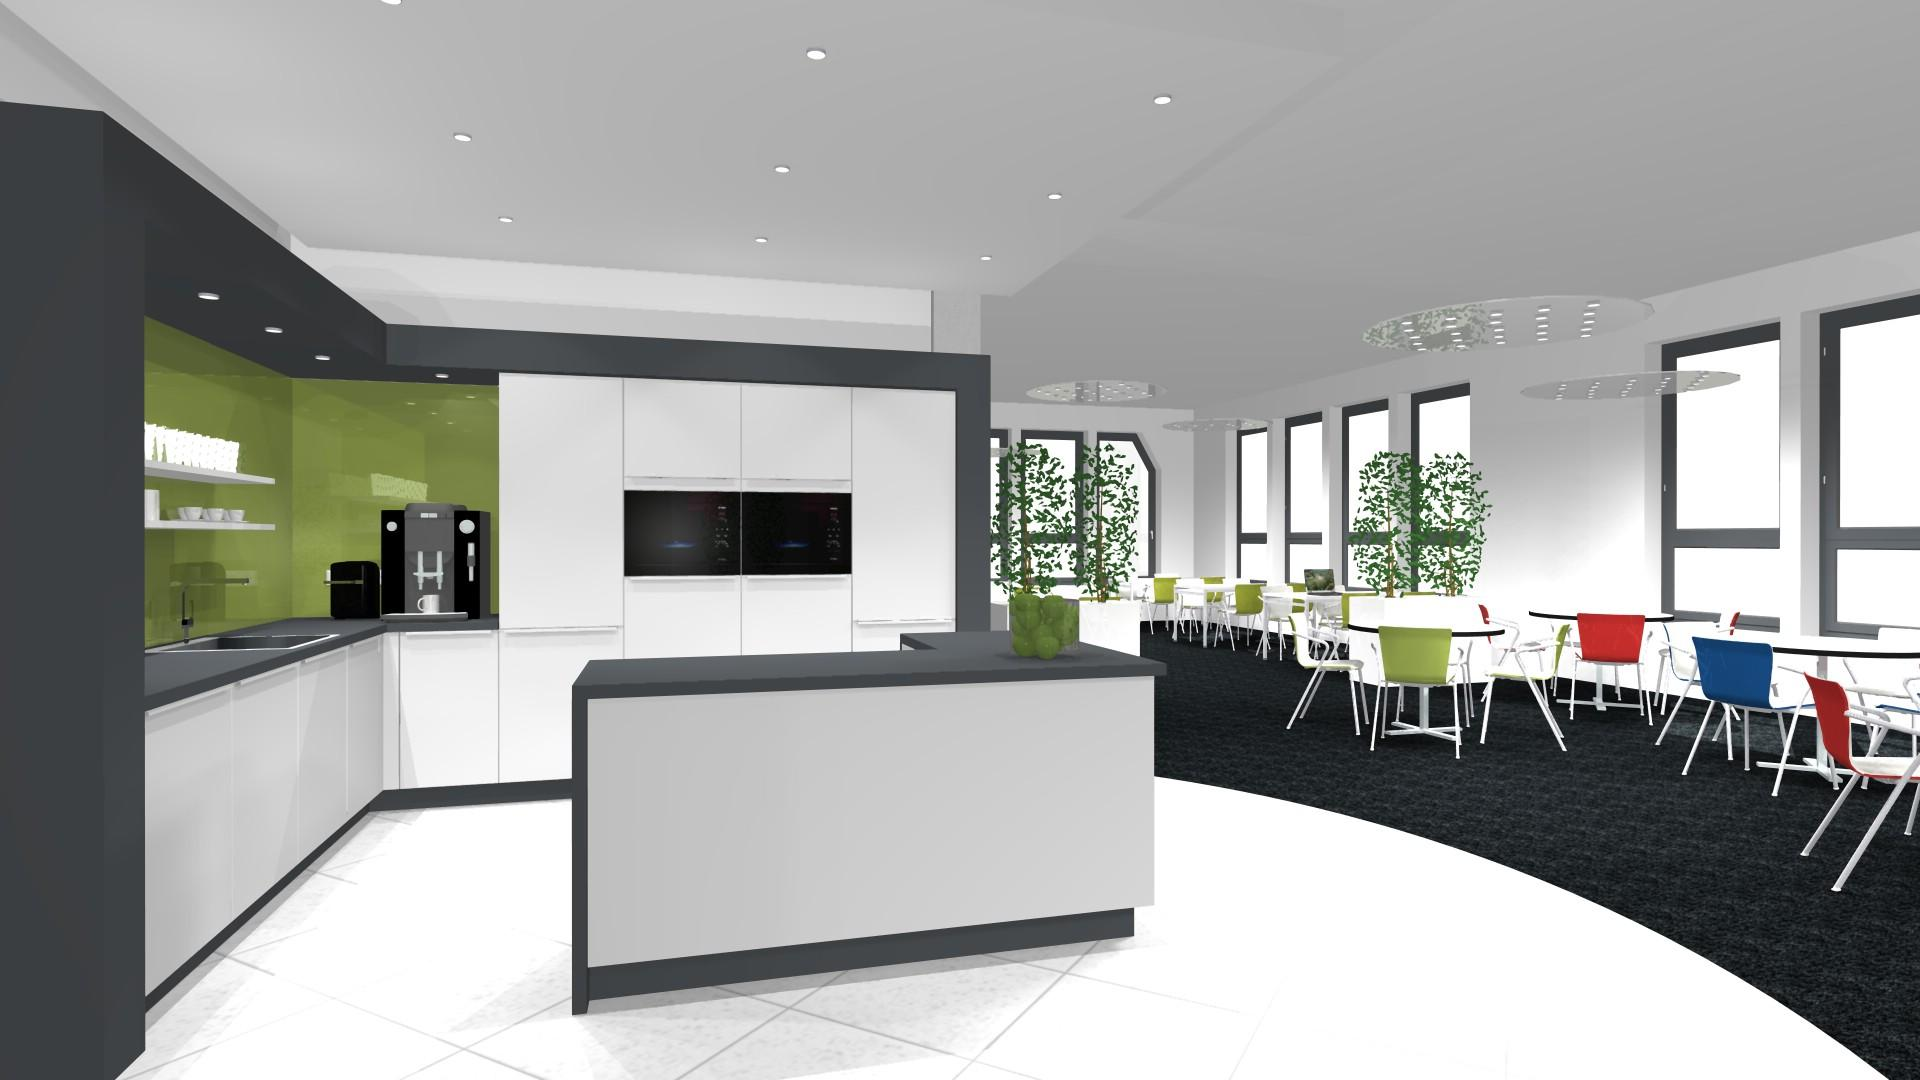 Lounge Kitchen #küche #loungebereich #kücheninsel #weißekücheninsel ©creative-interior - Andreas Holland-Moritz